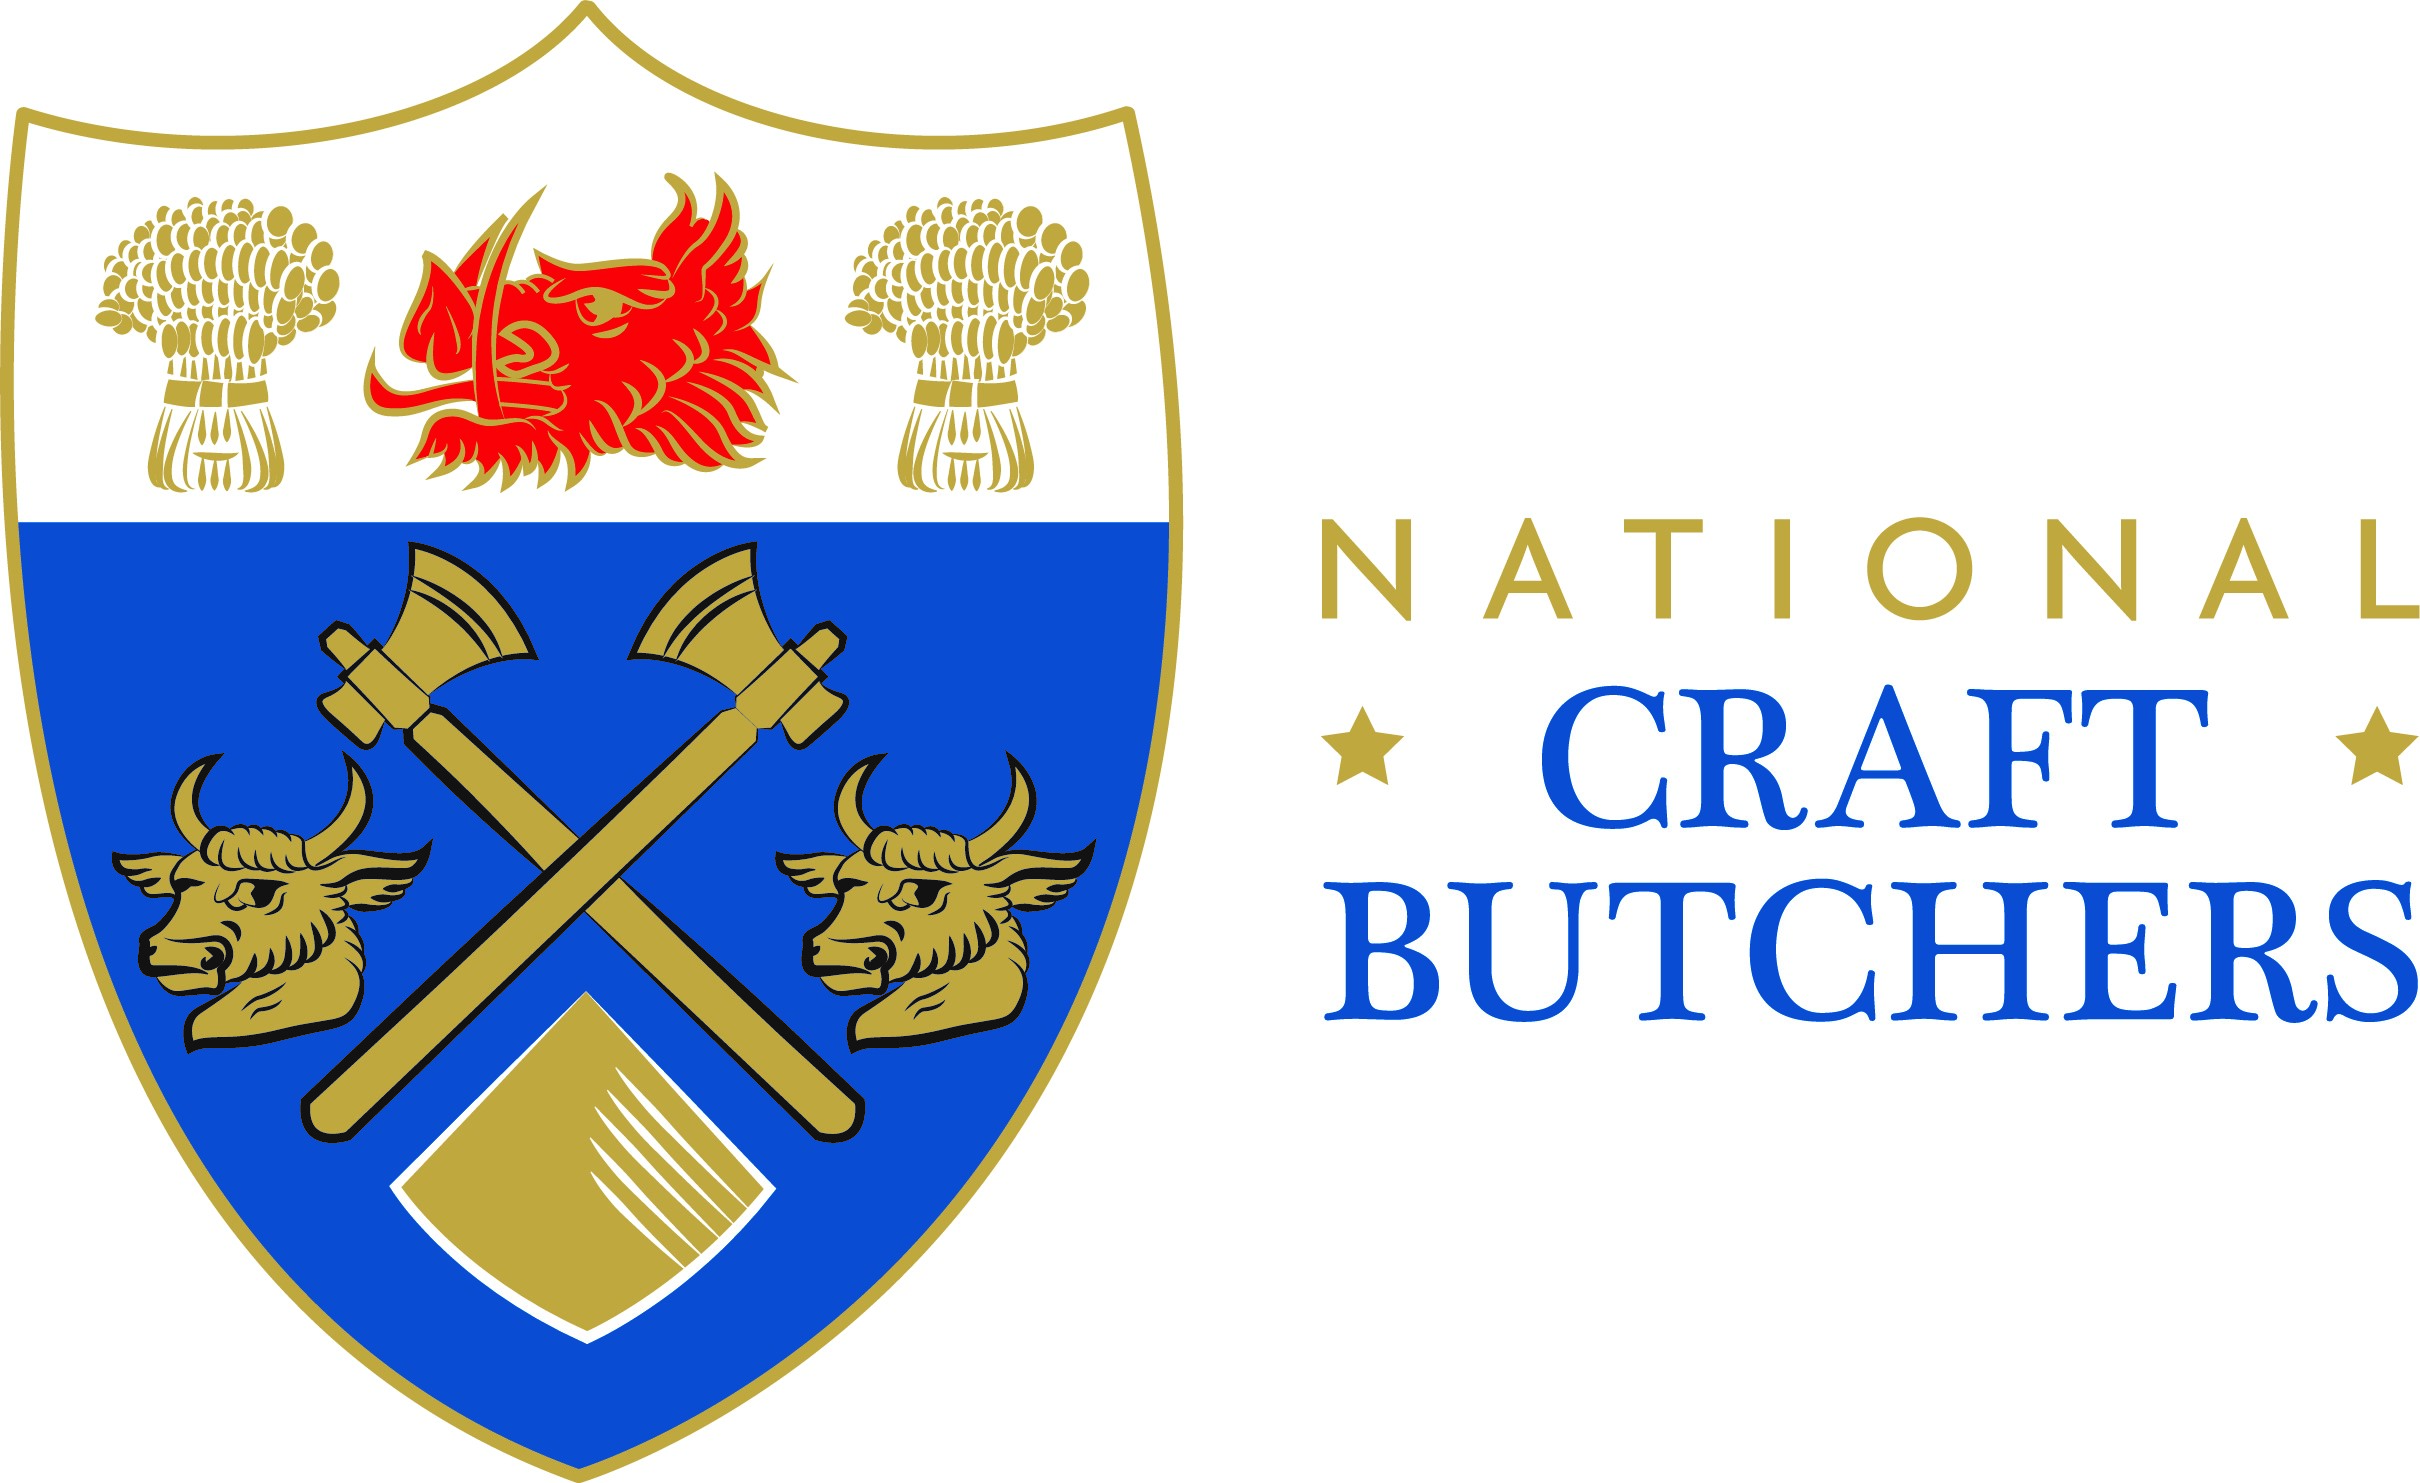 National Craft Butchers